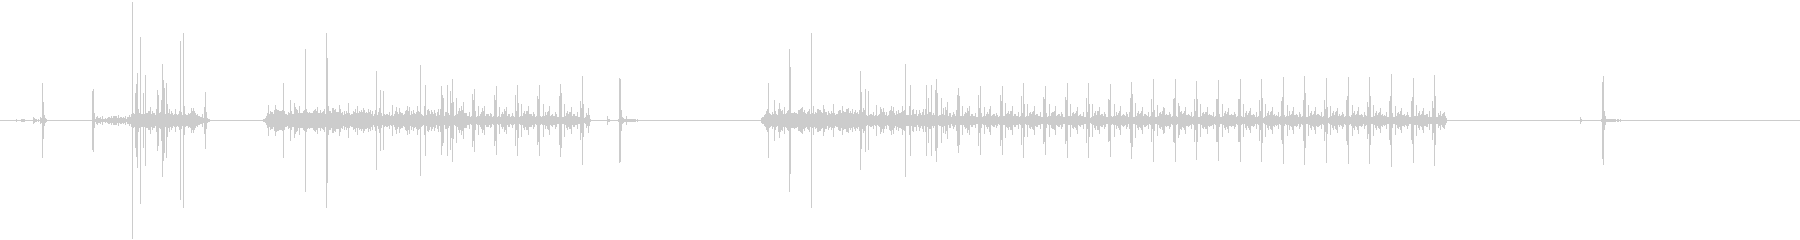 old music gramophone's unreproduced waveform